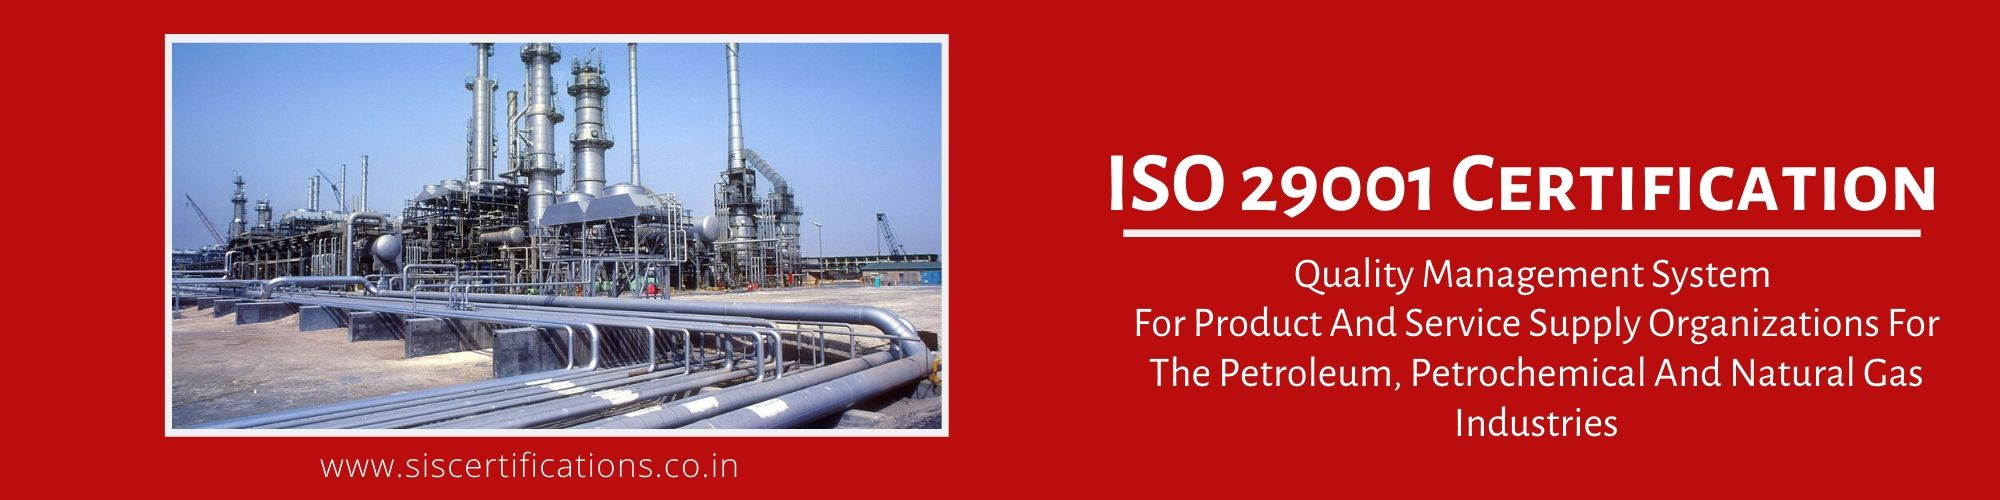 ISO 29001 Certification, ISO 29001 Certification